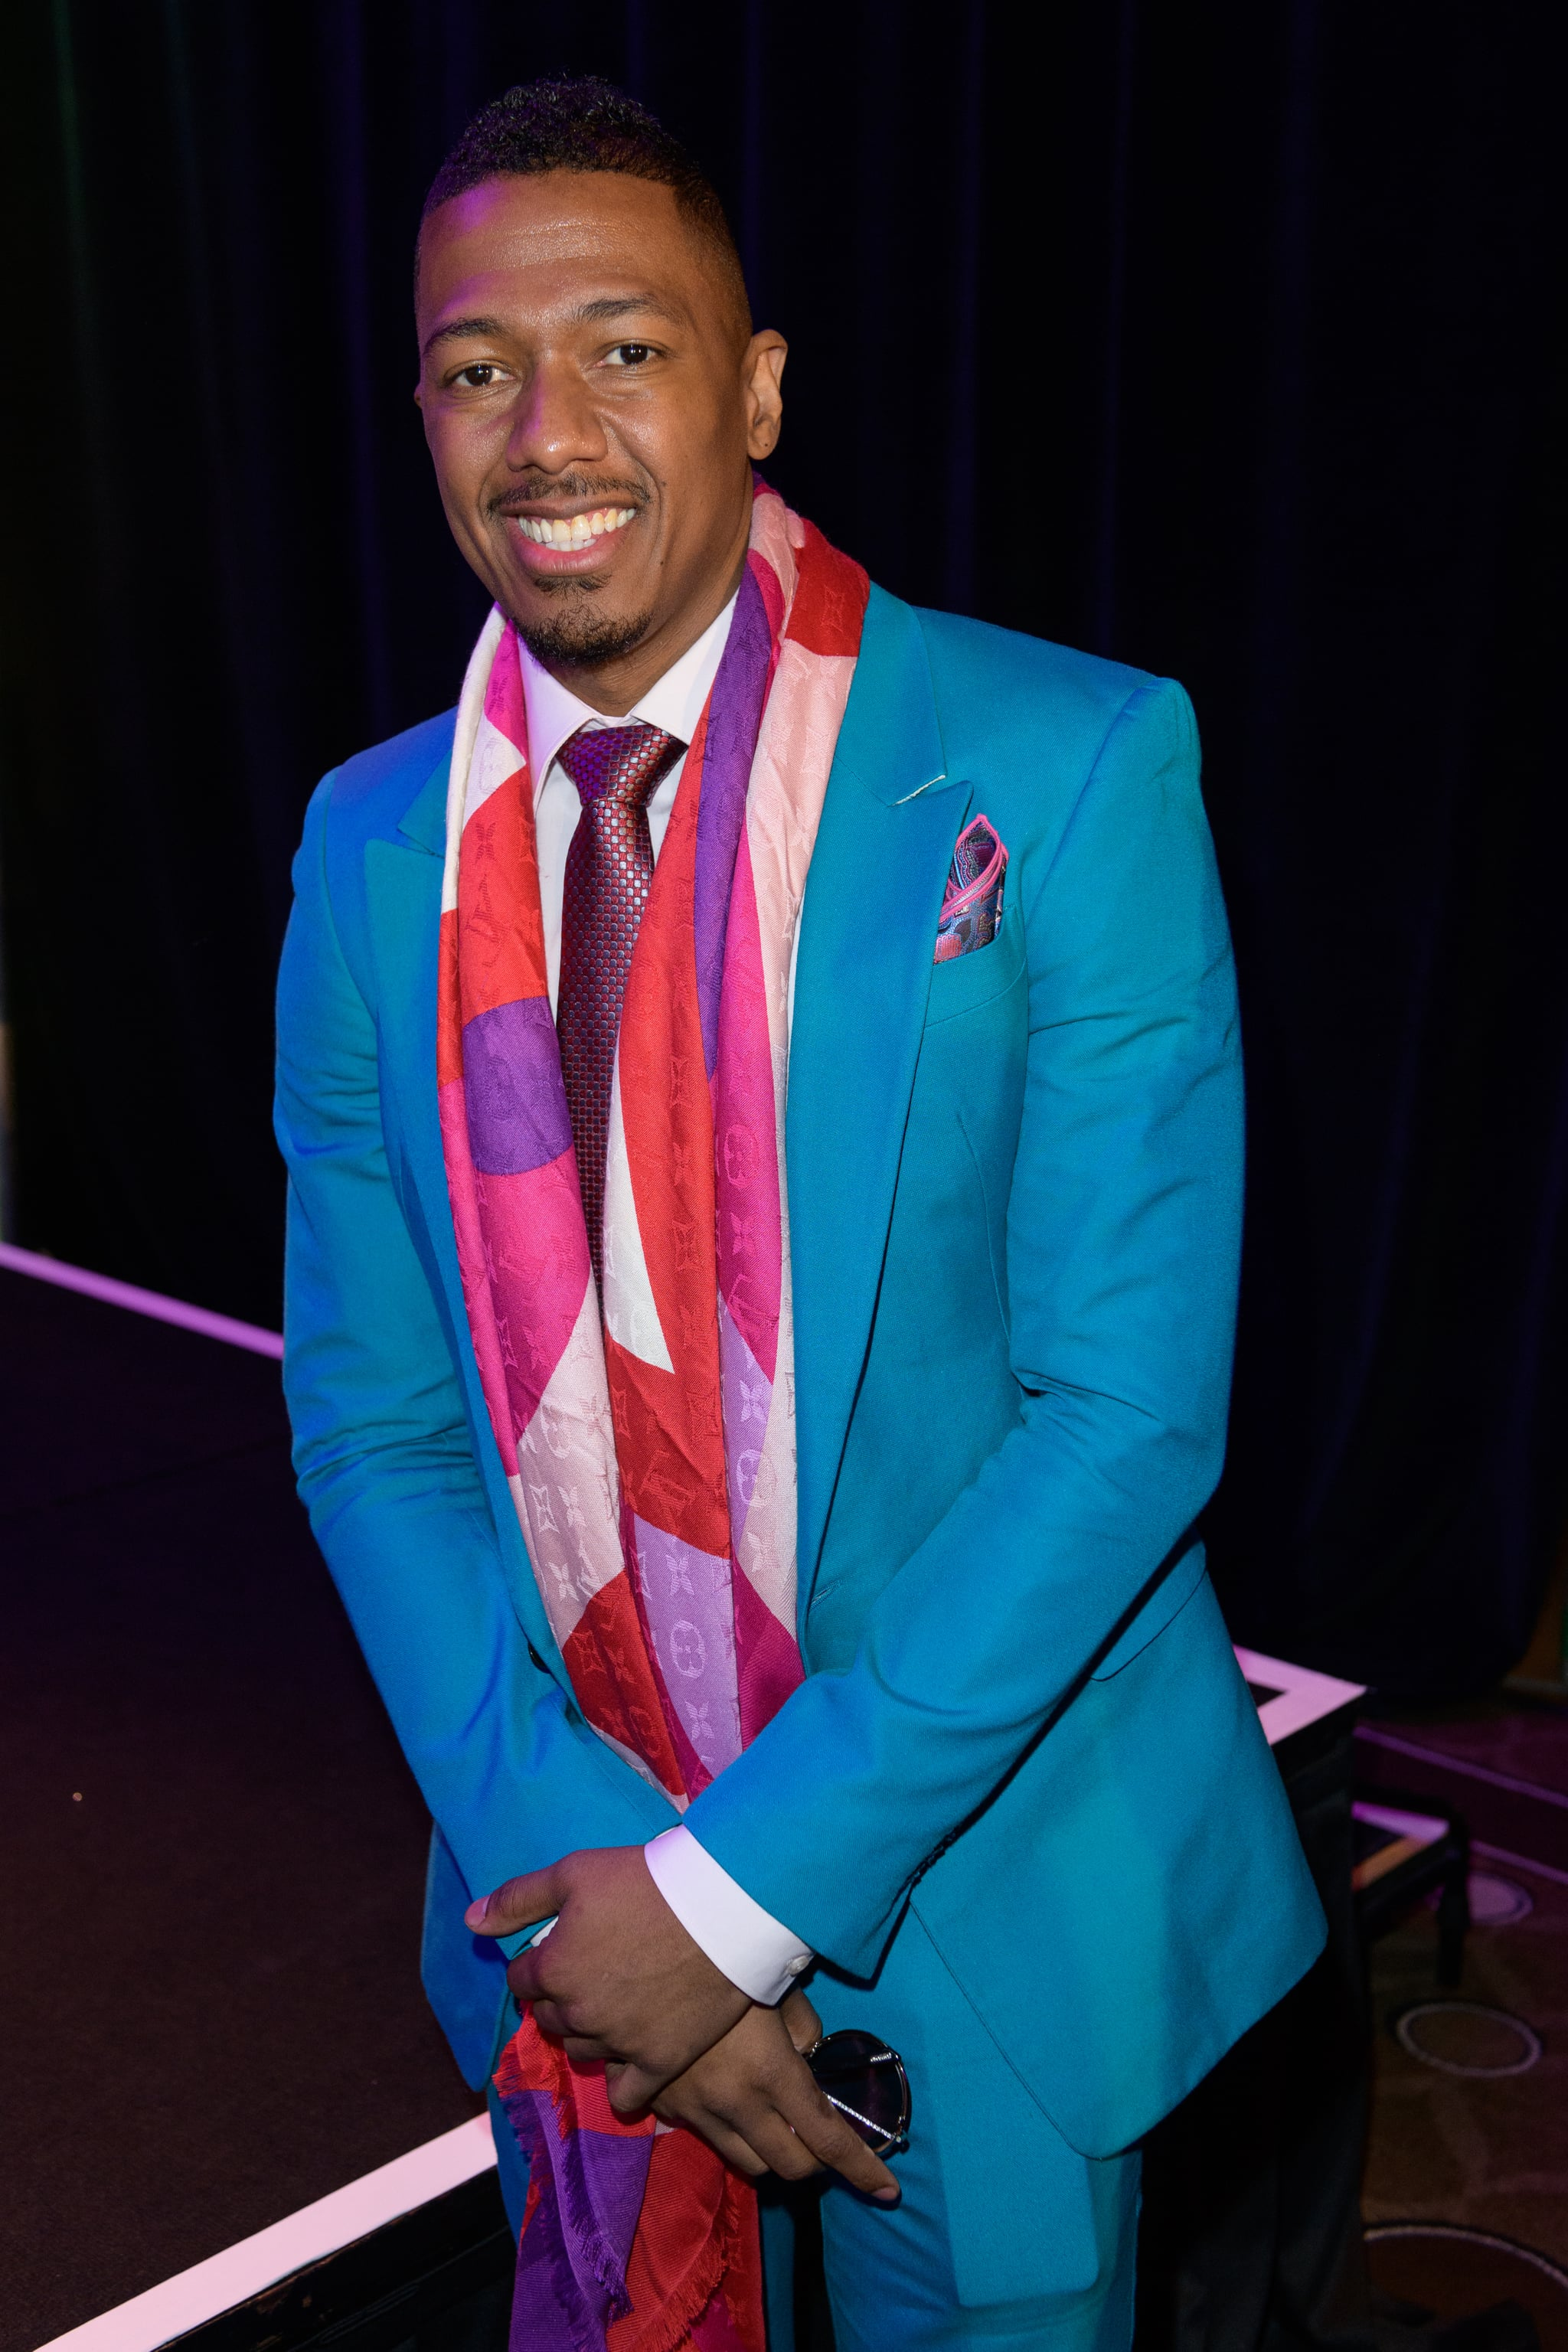 MIAMI BEACH, FL - JANUARY 22:  Nick Cannon poses for a portrait during NATPE Miami 2020 - Iris Awards at Fontainebleau Hotel on January 22, 2020 in Miami Beach, Florida.  (Photo by Jason Koerner/Getty Images)